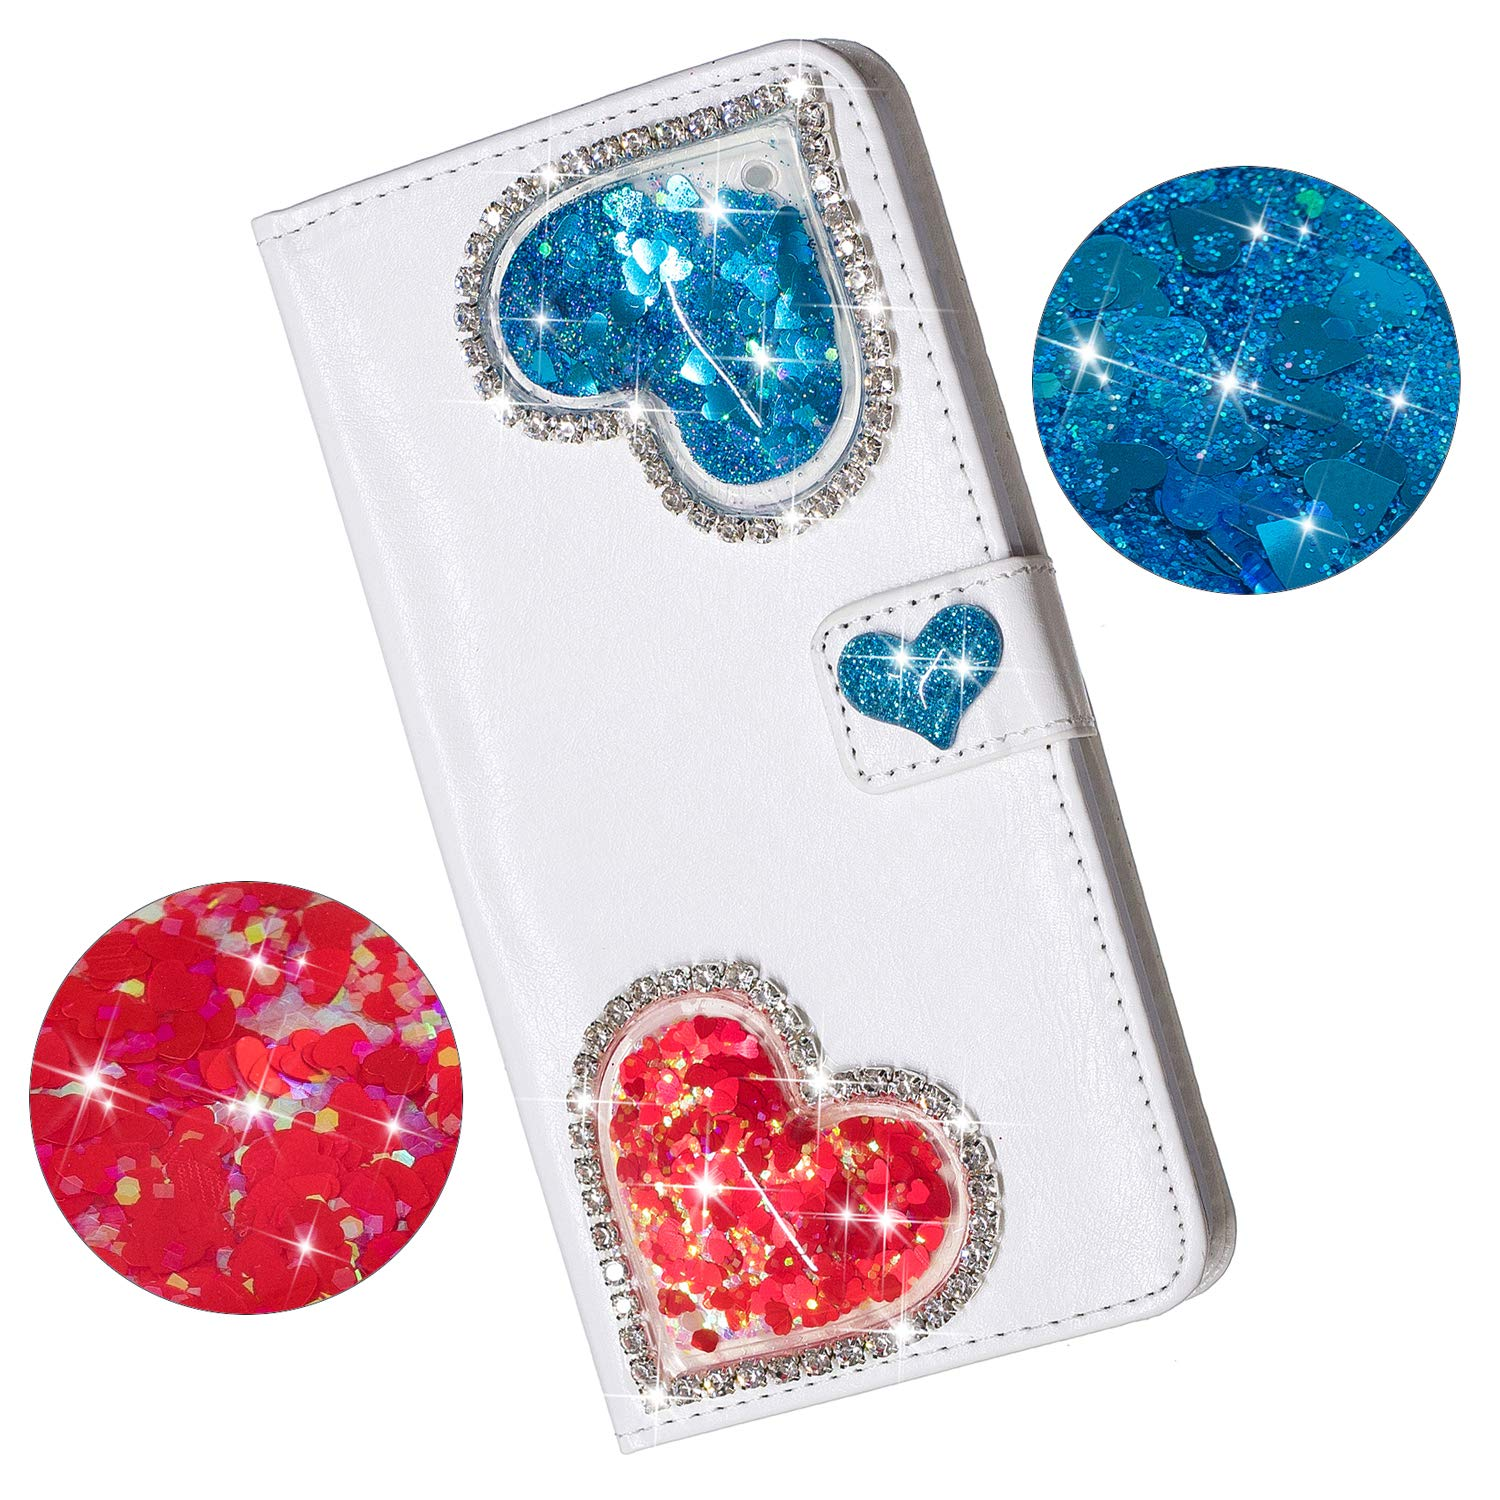 Yobby iPhone 7 Wallet Case,iPhone 8 Diamond Purse Case 3D Bling Floating Glitter Cute Heart White PU Leather Flip Cover with Card Holder Stand Magnetic Protective Shell-Blue by Yobby (Image #1)